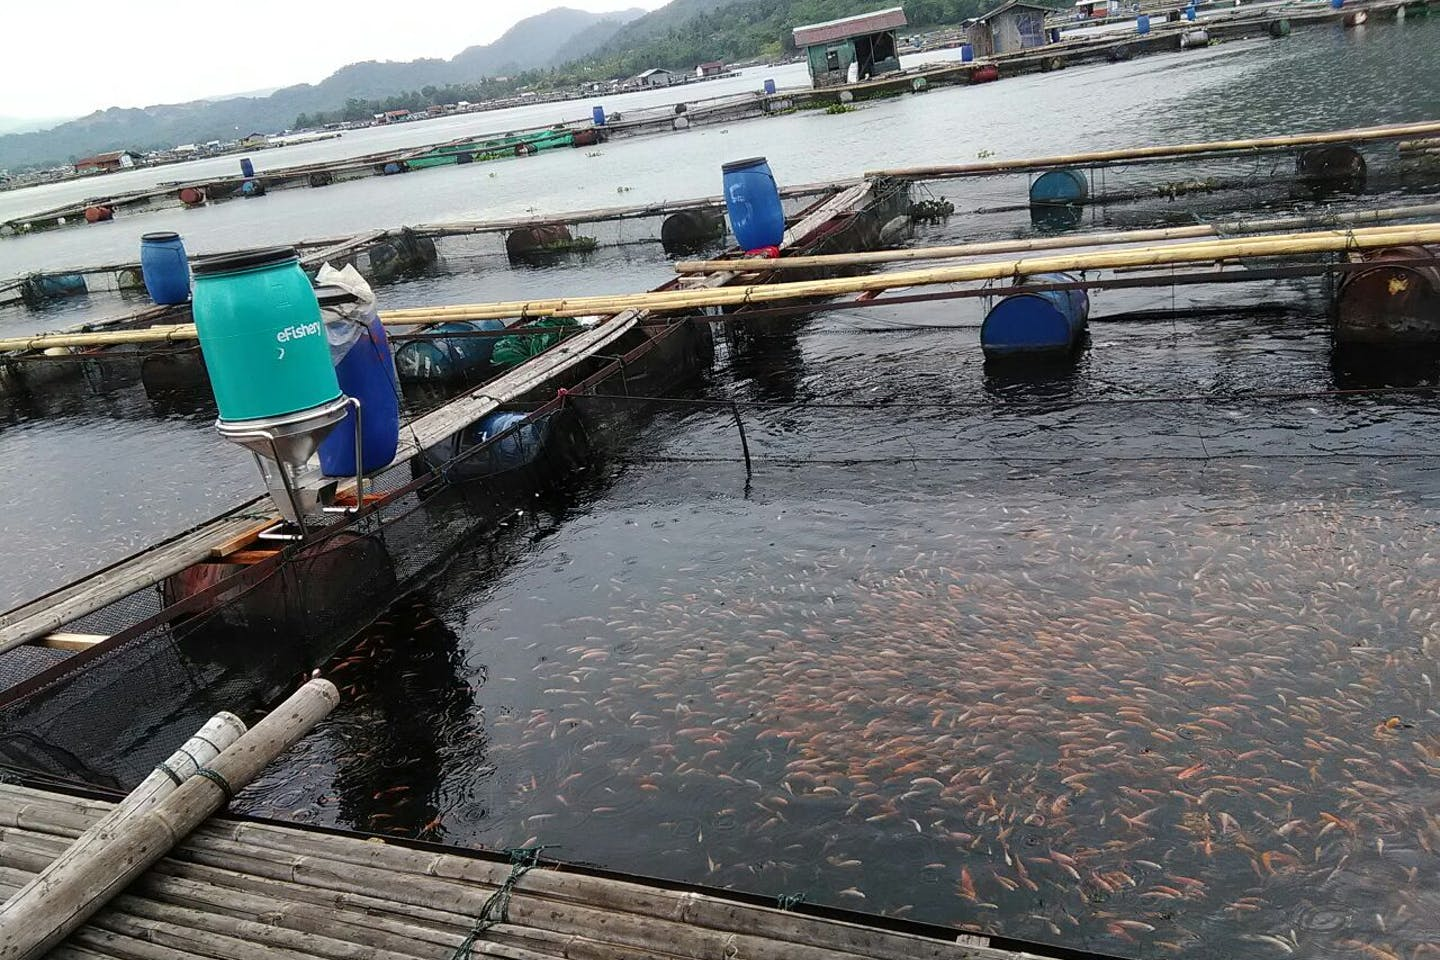 eFishery set up at a fish pond in Indonesia